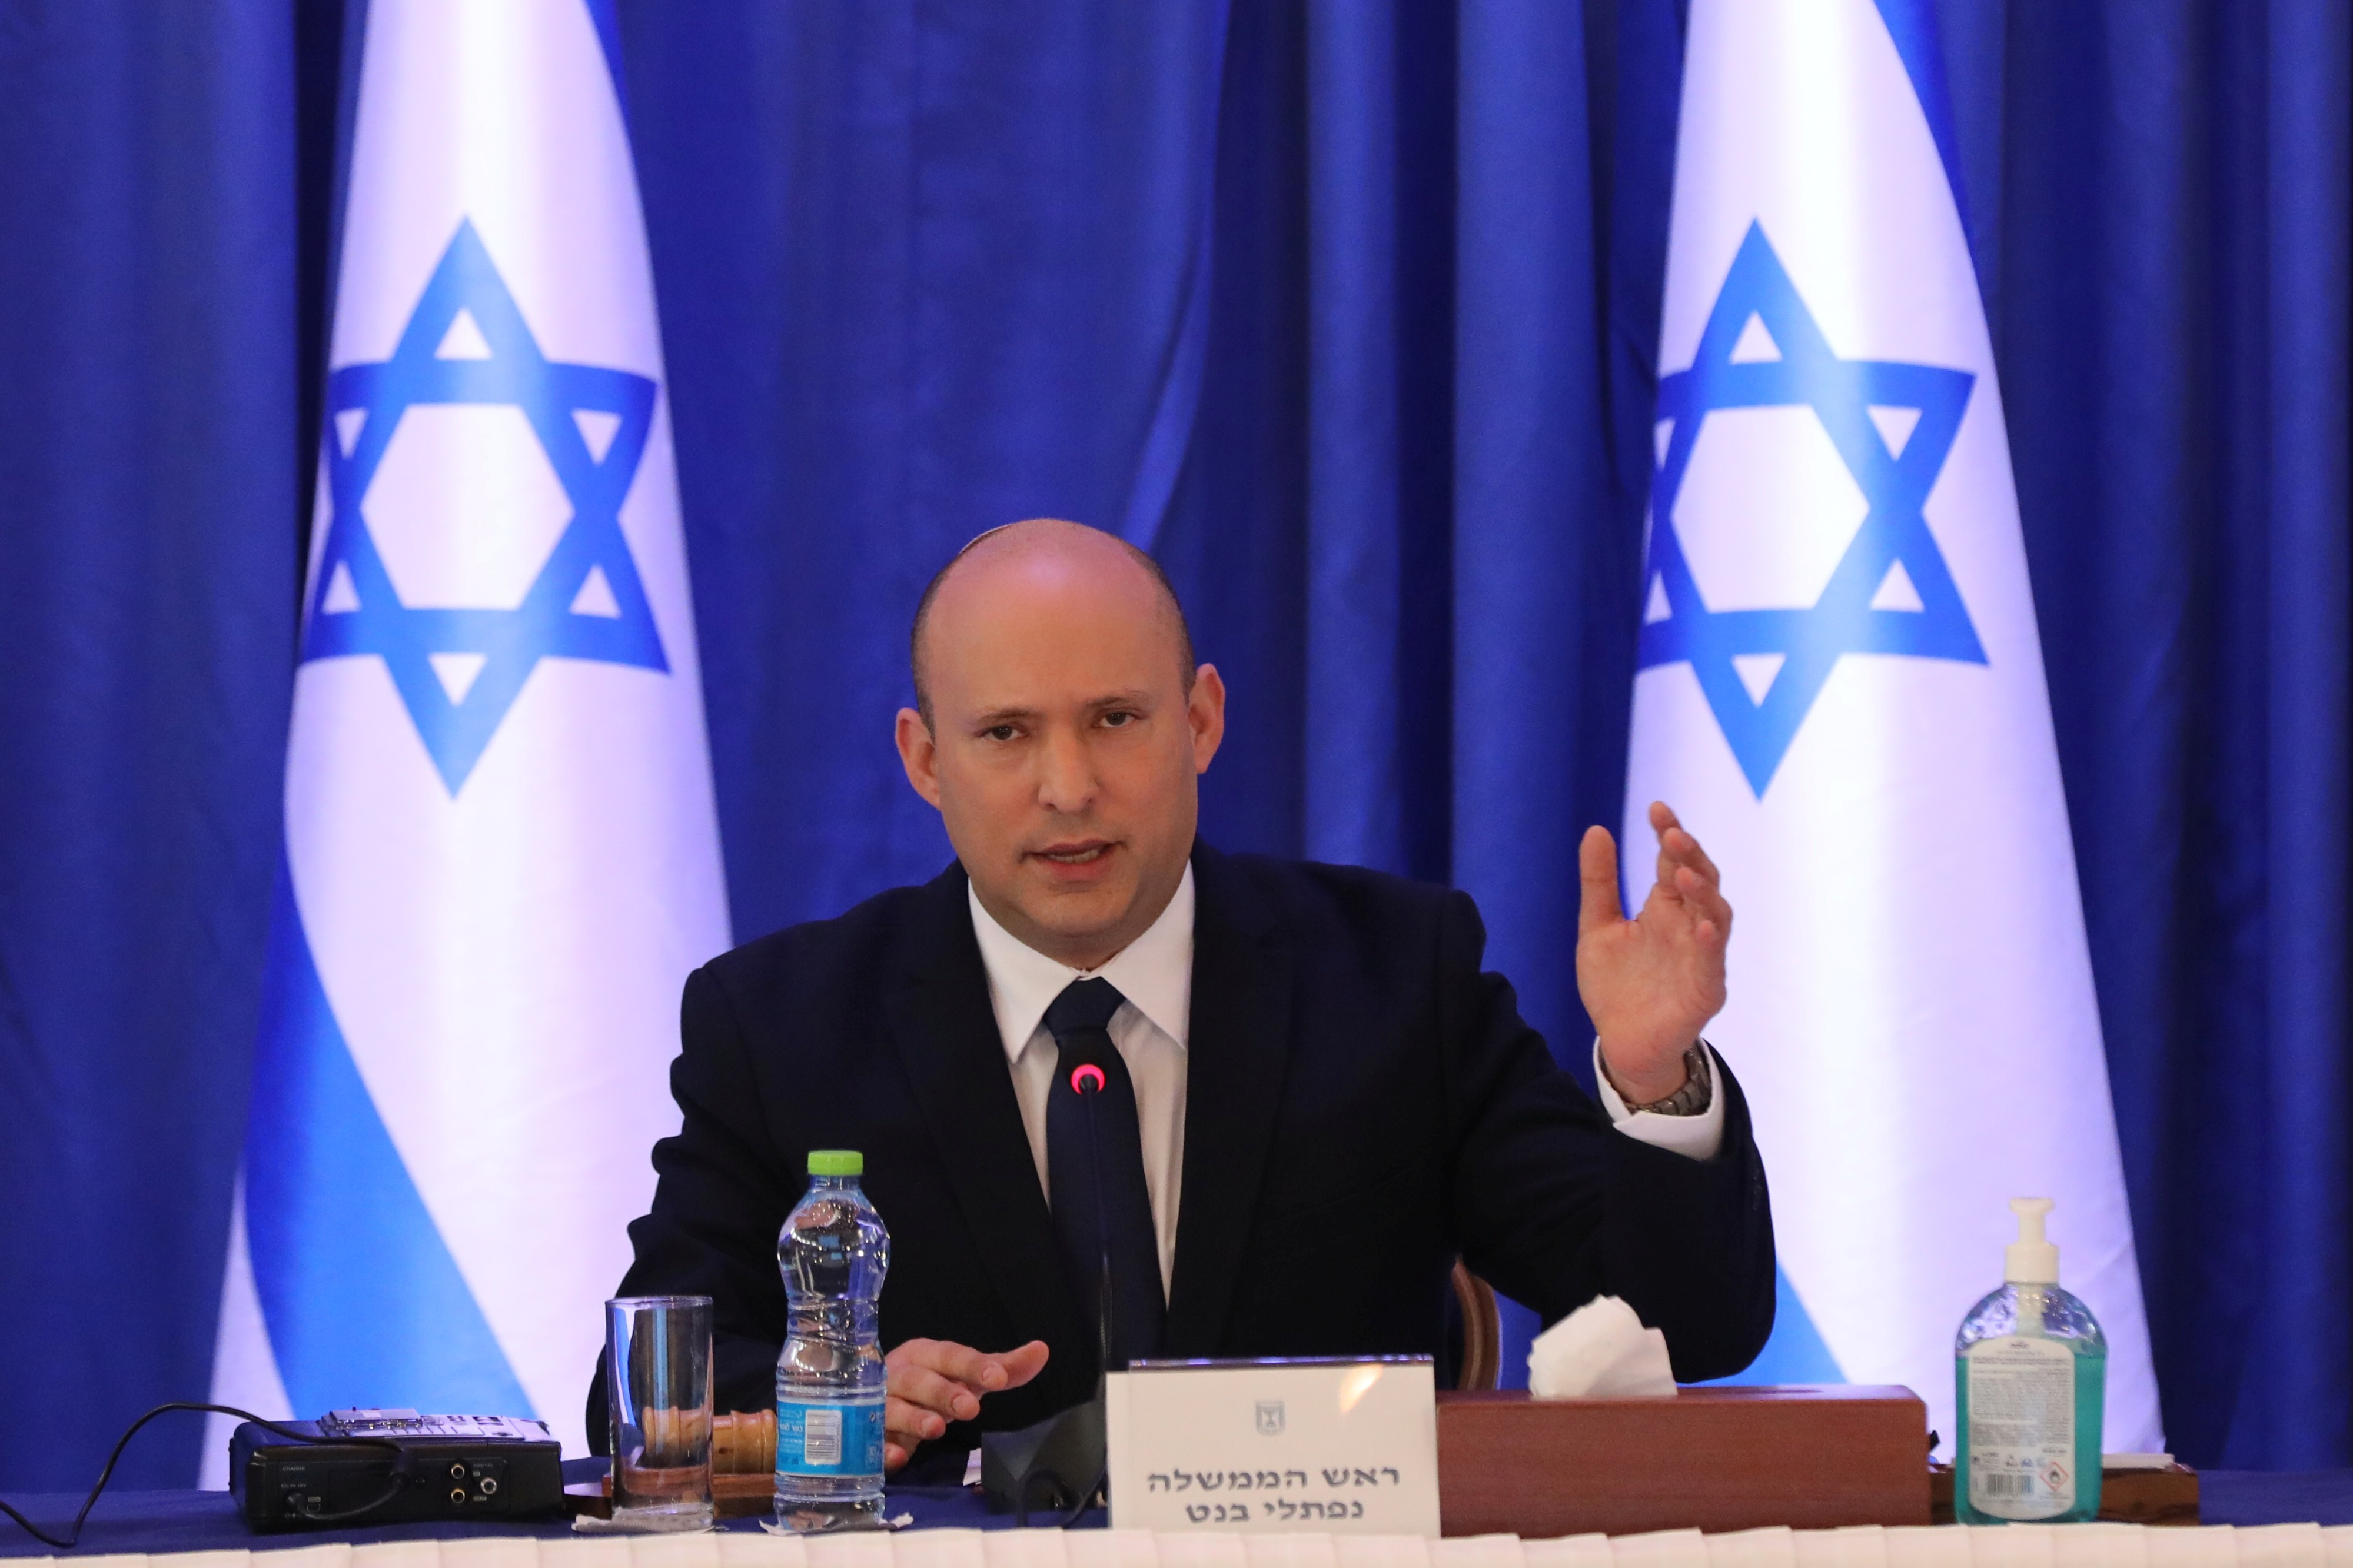 Israeli Prime Minister Naftali Bennett attends a cabinet meeting at the Ministry of foreign affairs offices in Jerusalem, September 12, 2021. Abir Sultan/Pool via REUTERS